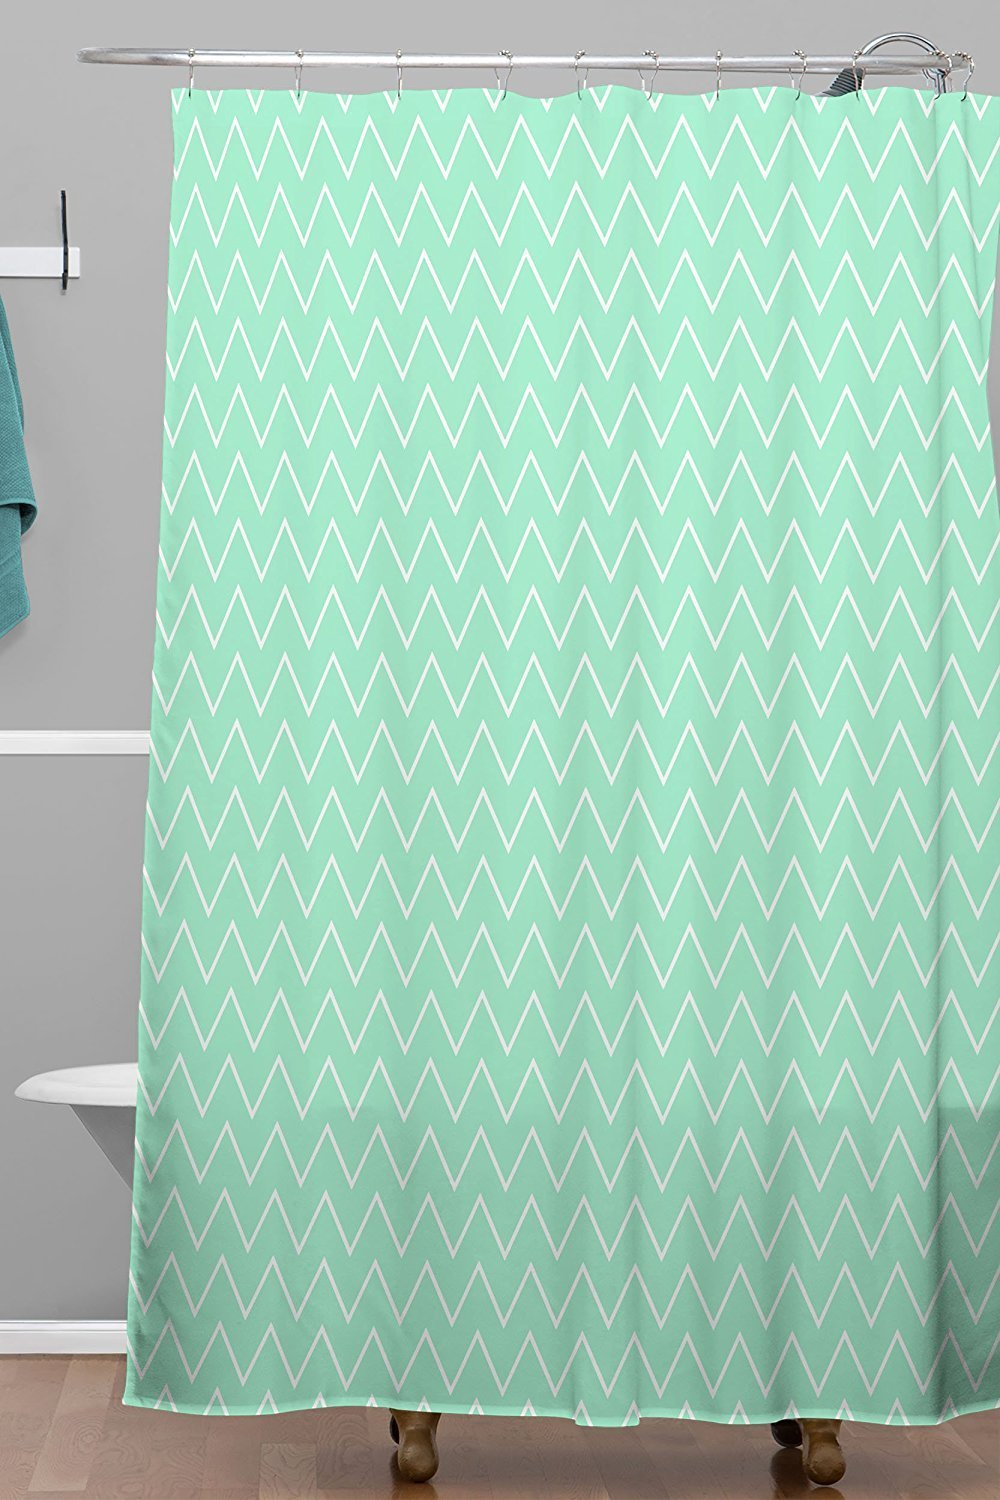 Memory Home Classic Mint Shower Curtain Fabric Polyester Waterproof Bathroom 70x72inch Green Striped